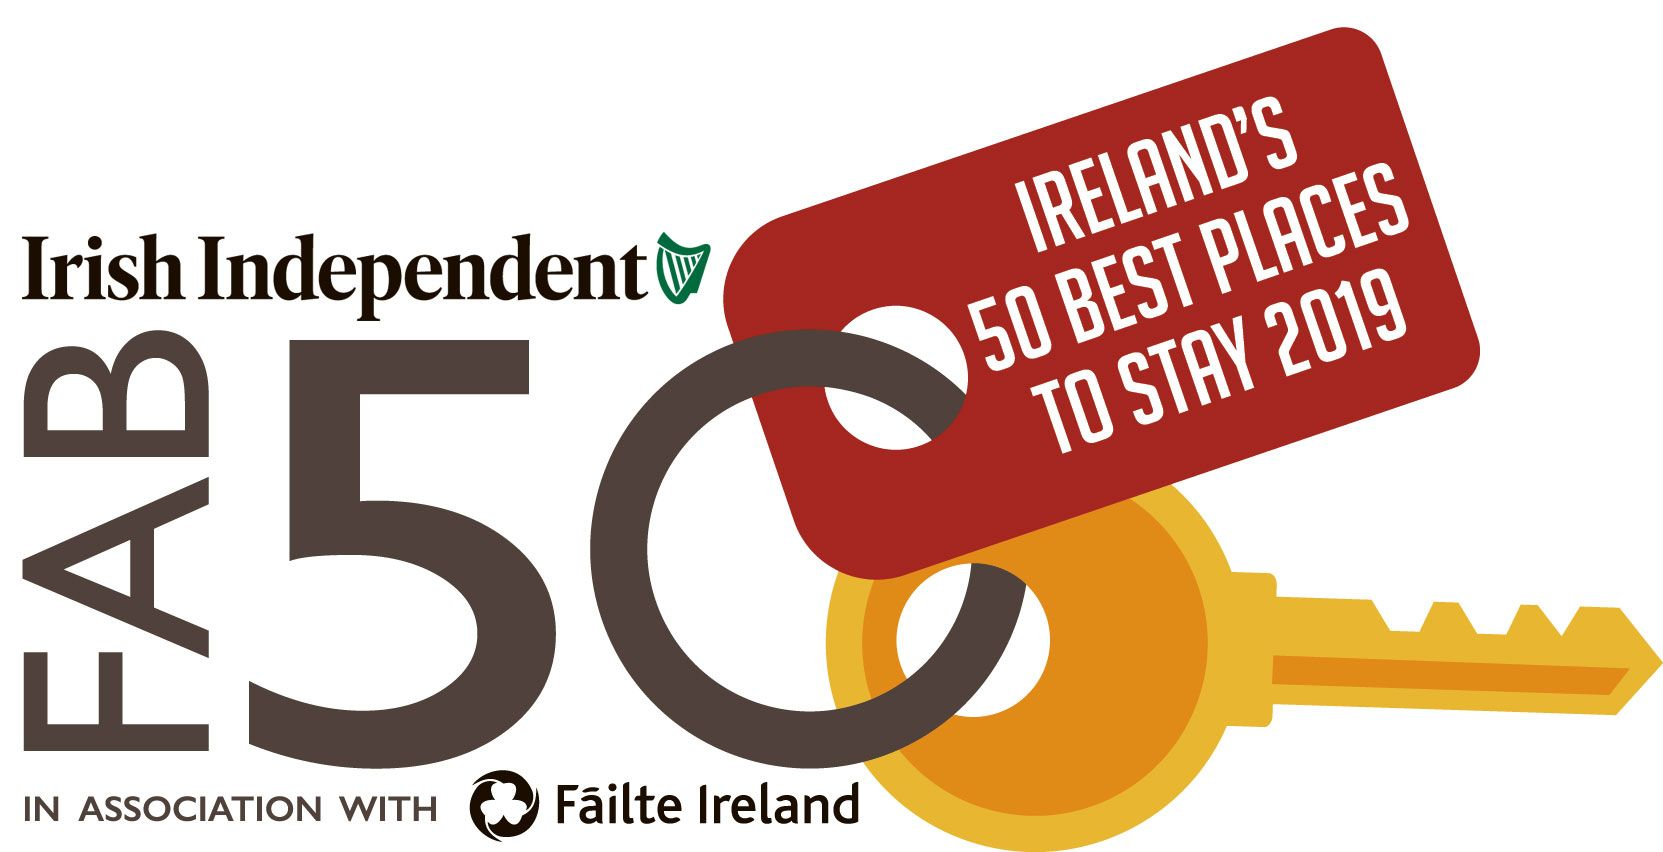 d7893b19ed191 The 2019 tourism season kicks off this weekend, and with it our Fab 50 —  the Irish Independent's annual list of Ireland's best places to stay, ...